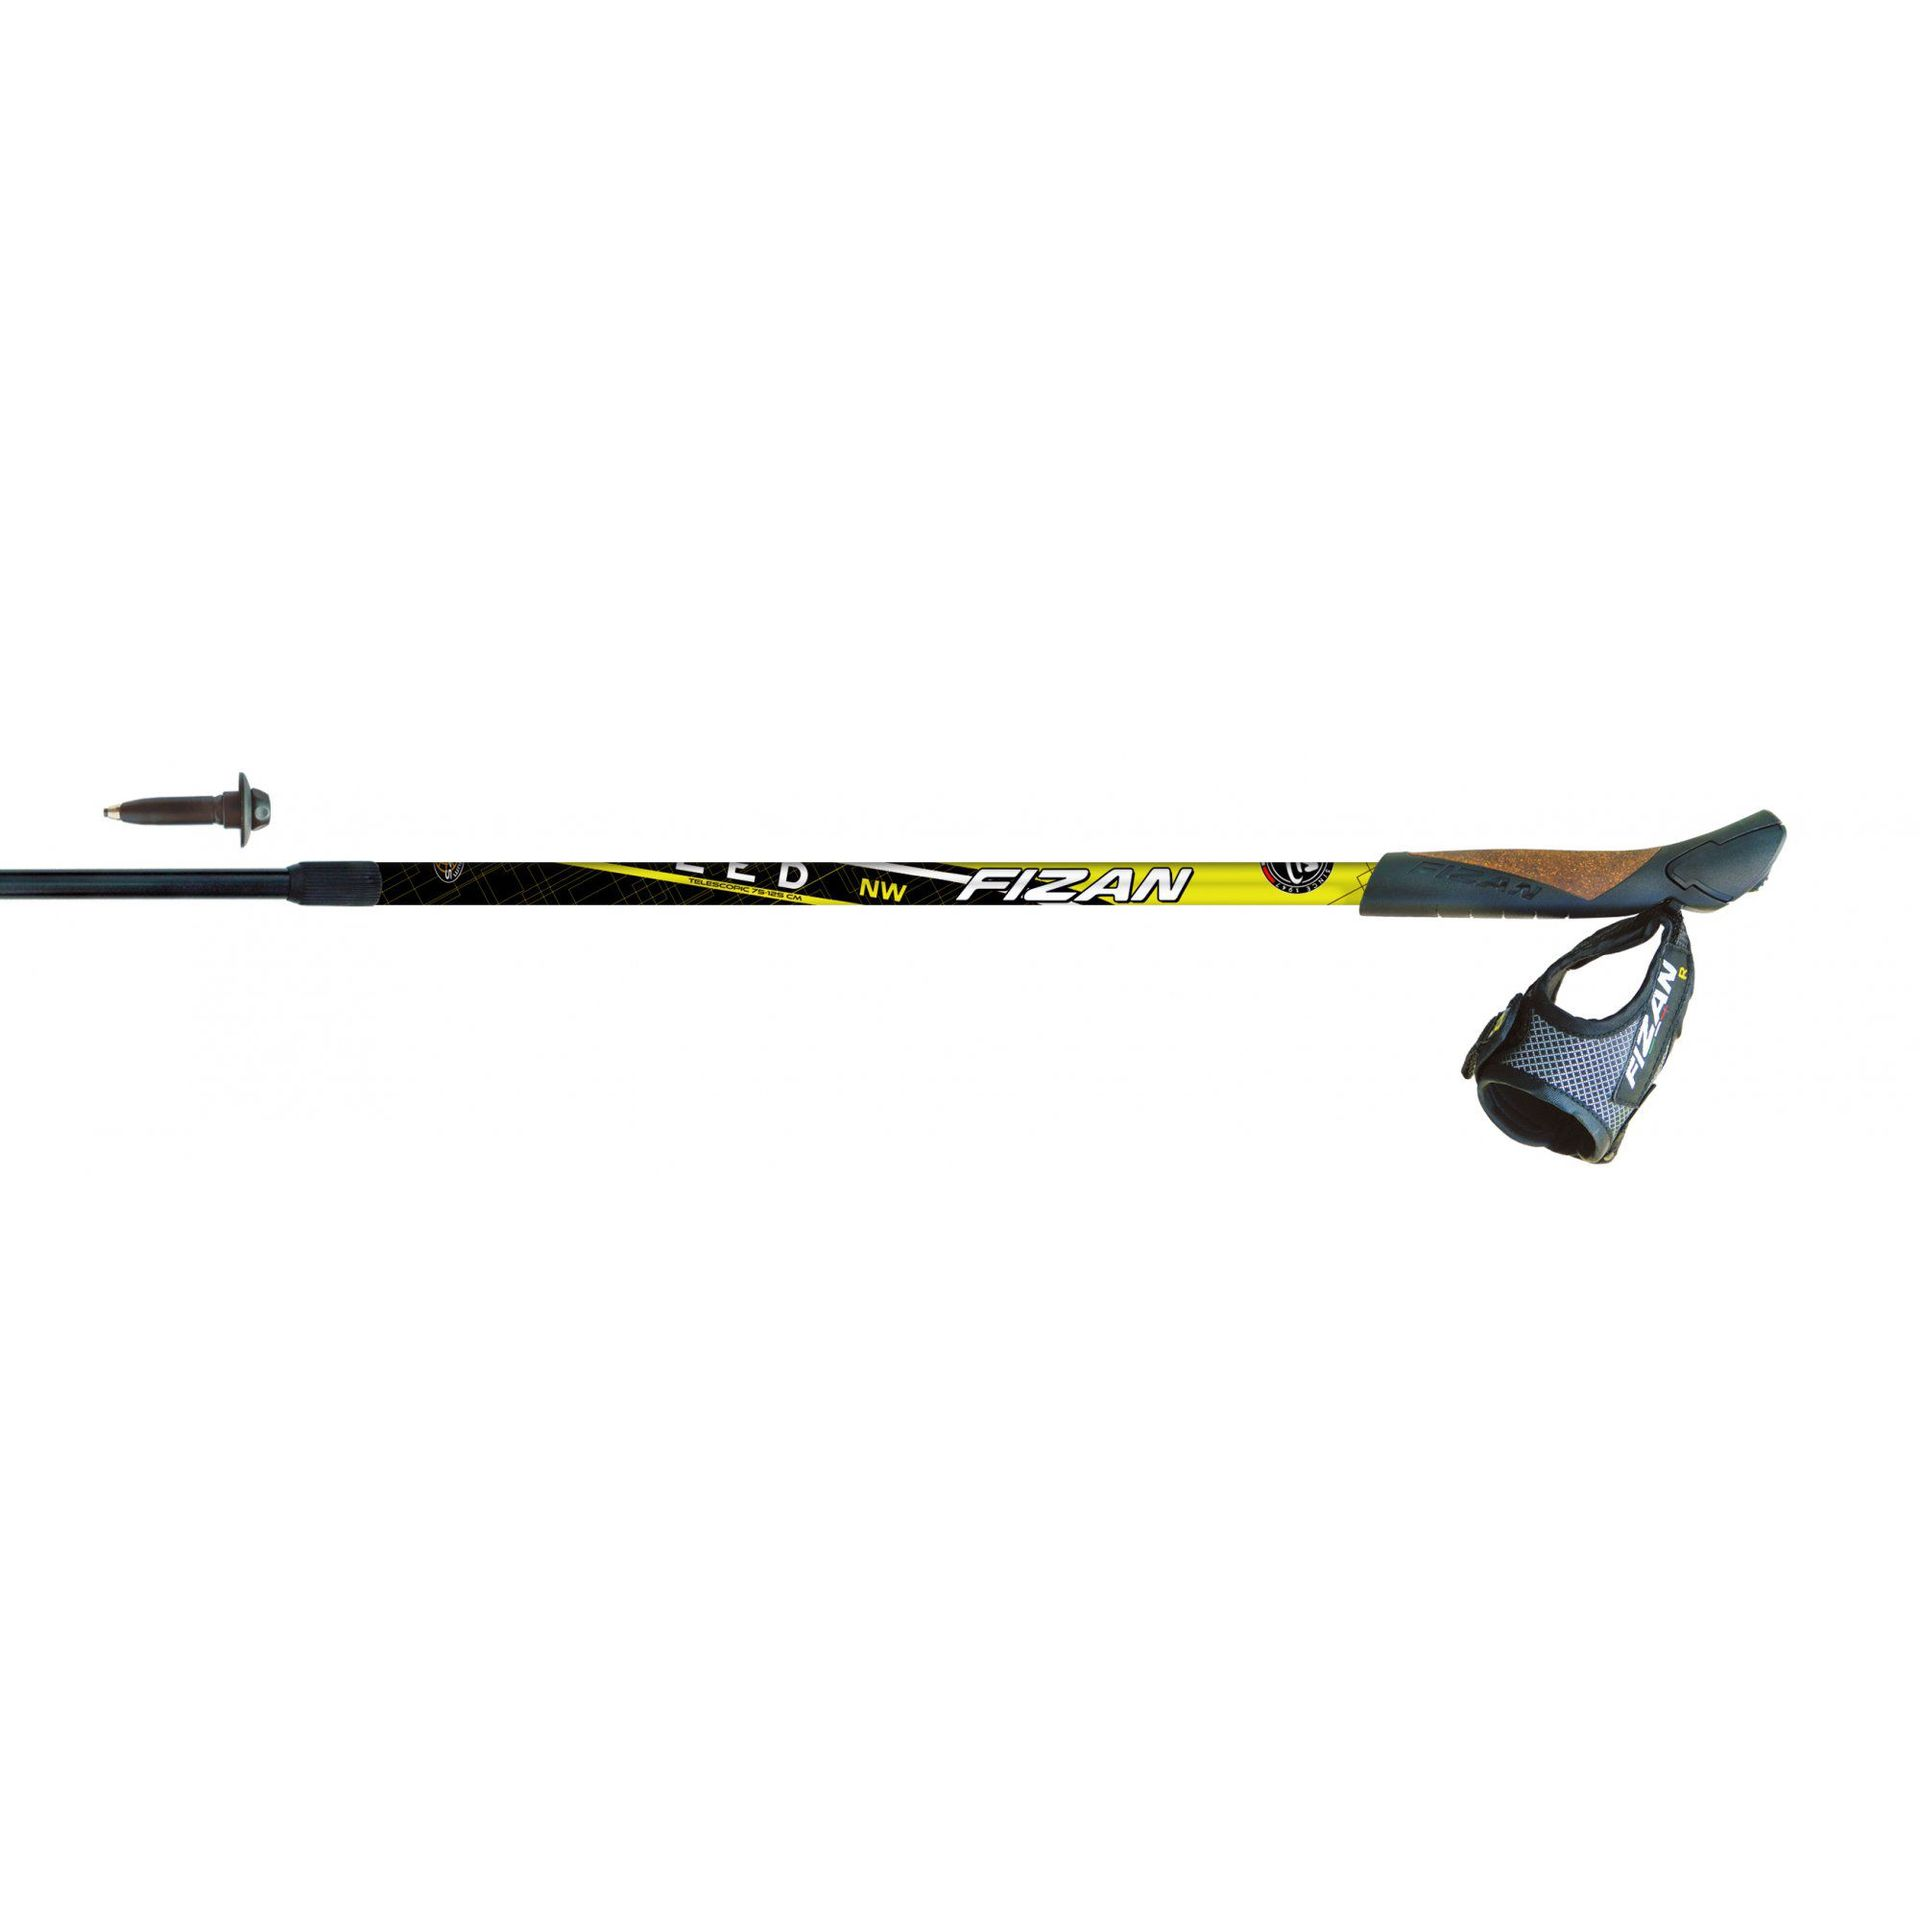 KIJE NORDIC WALKING FIZAN NW SPEED YELLOW